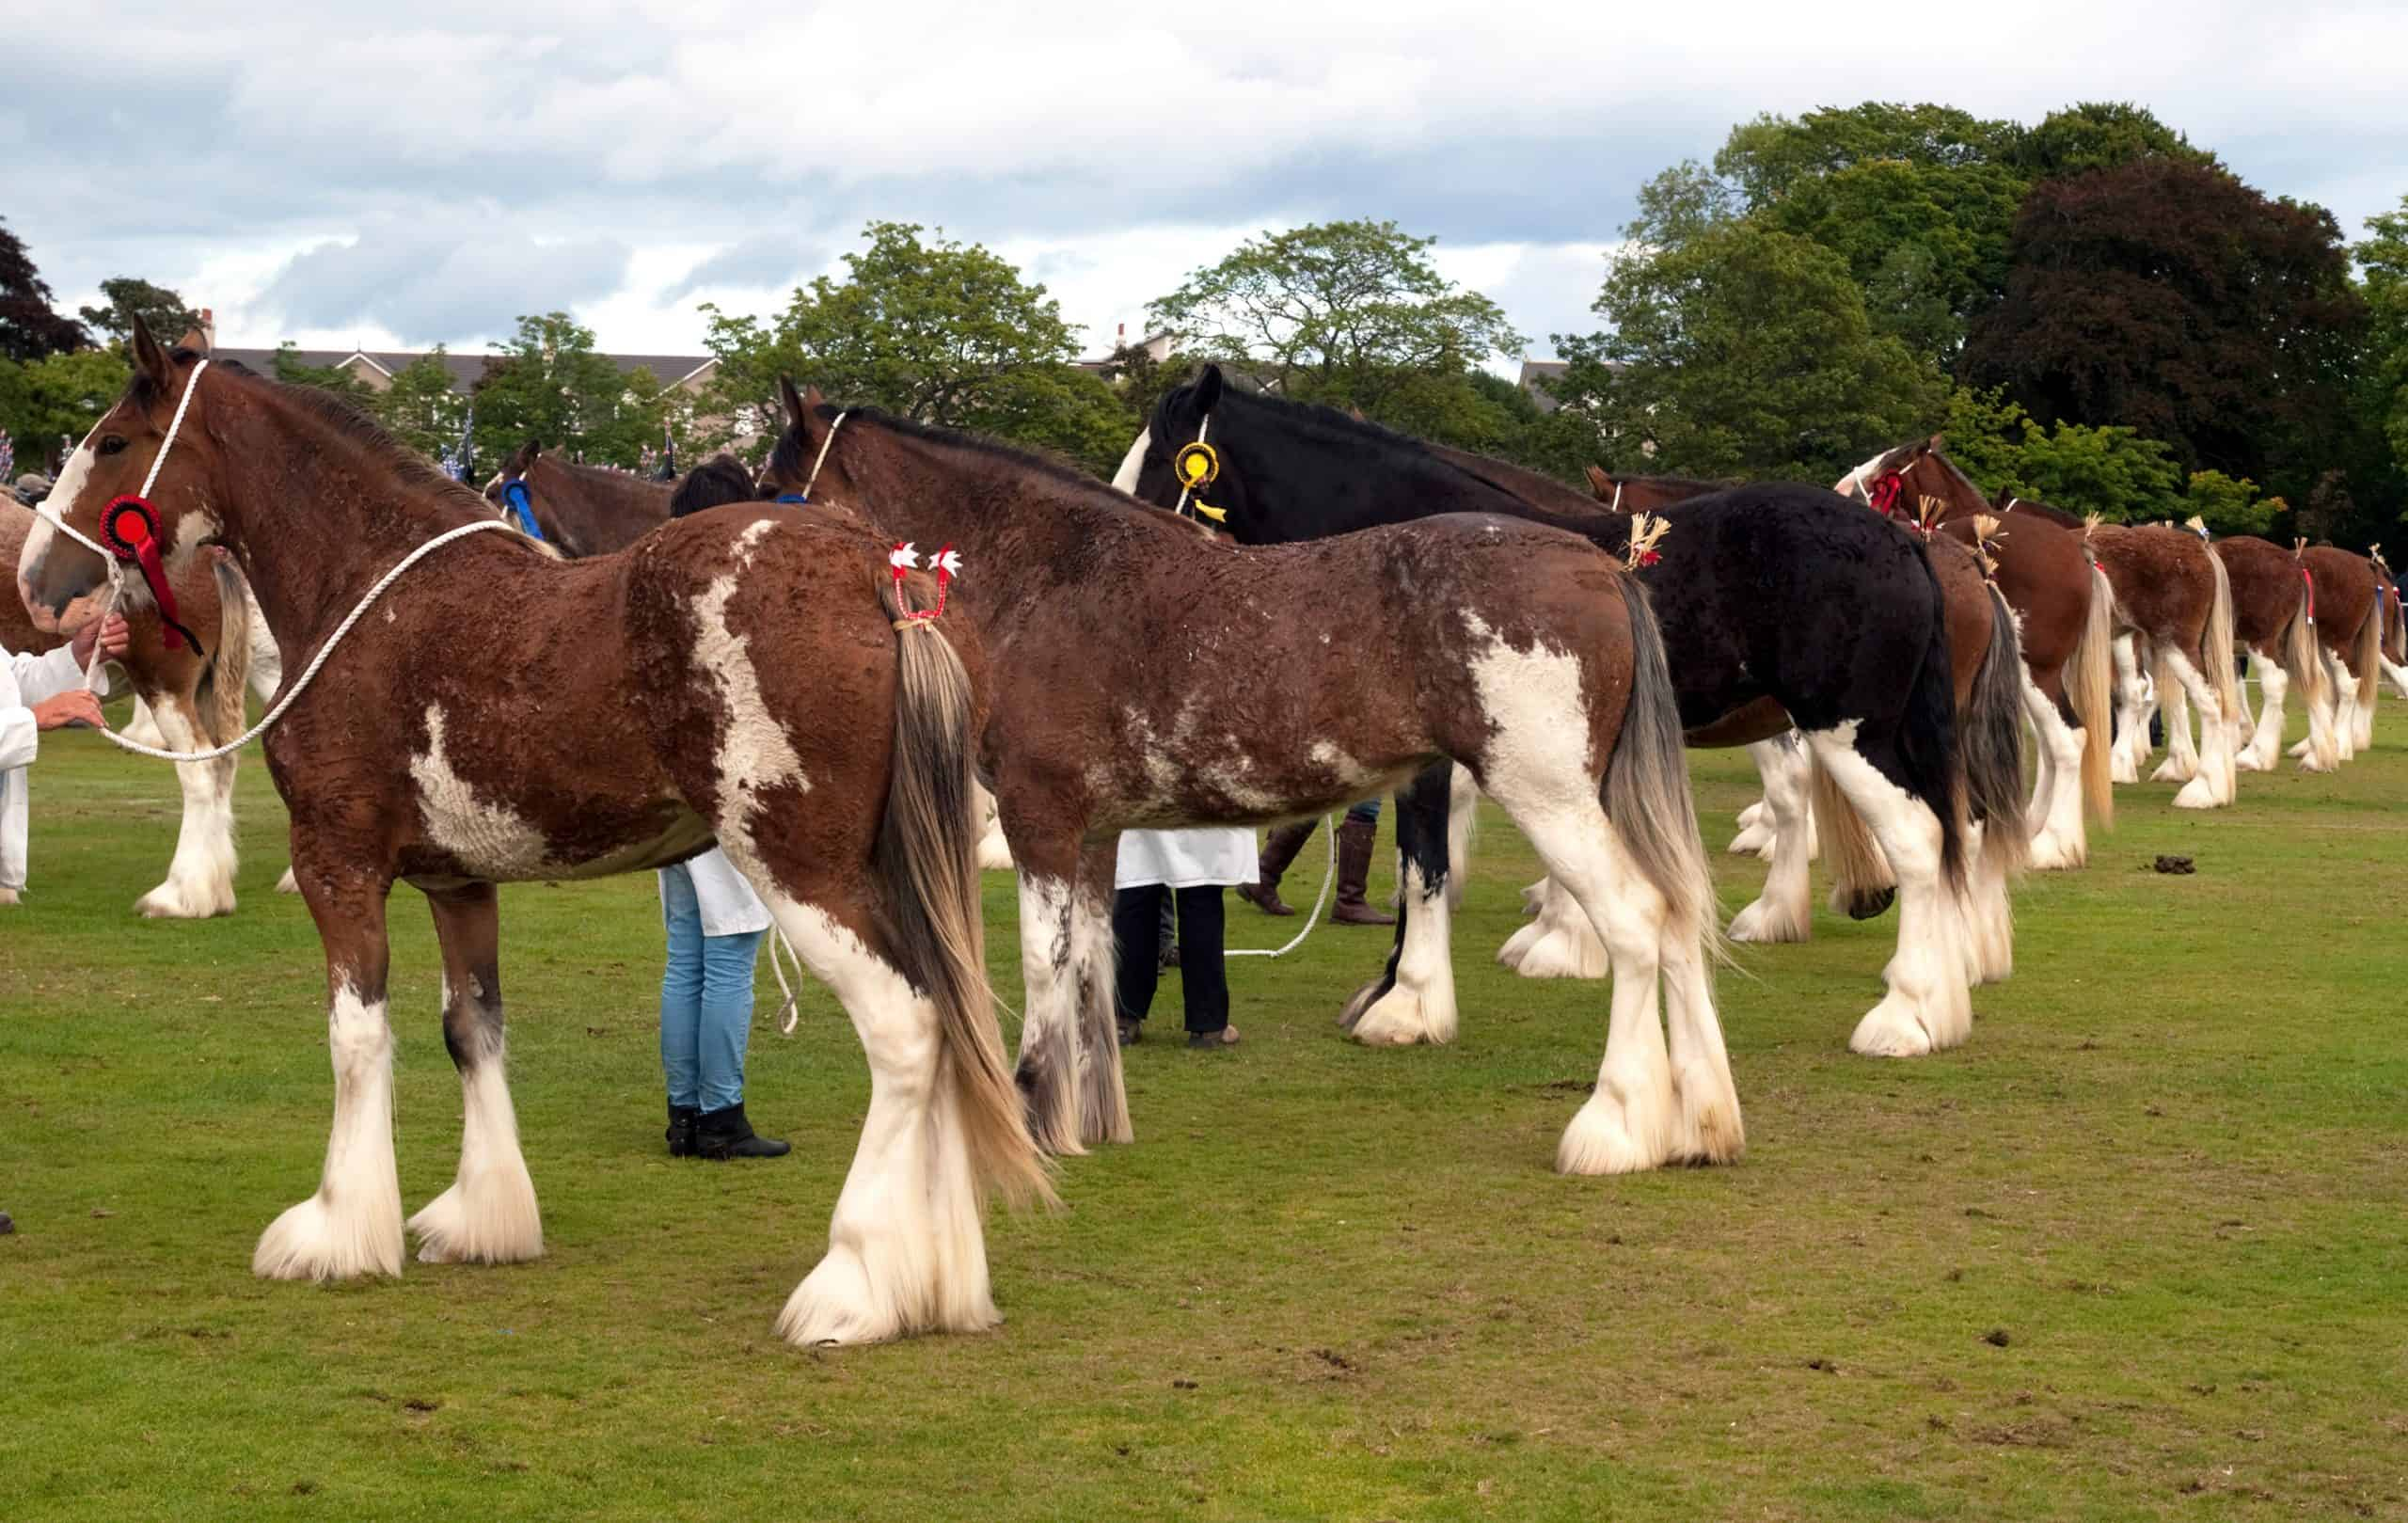 Line up of Clydesdale horses at an agricultural show